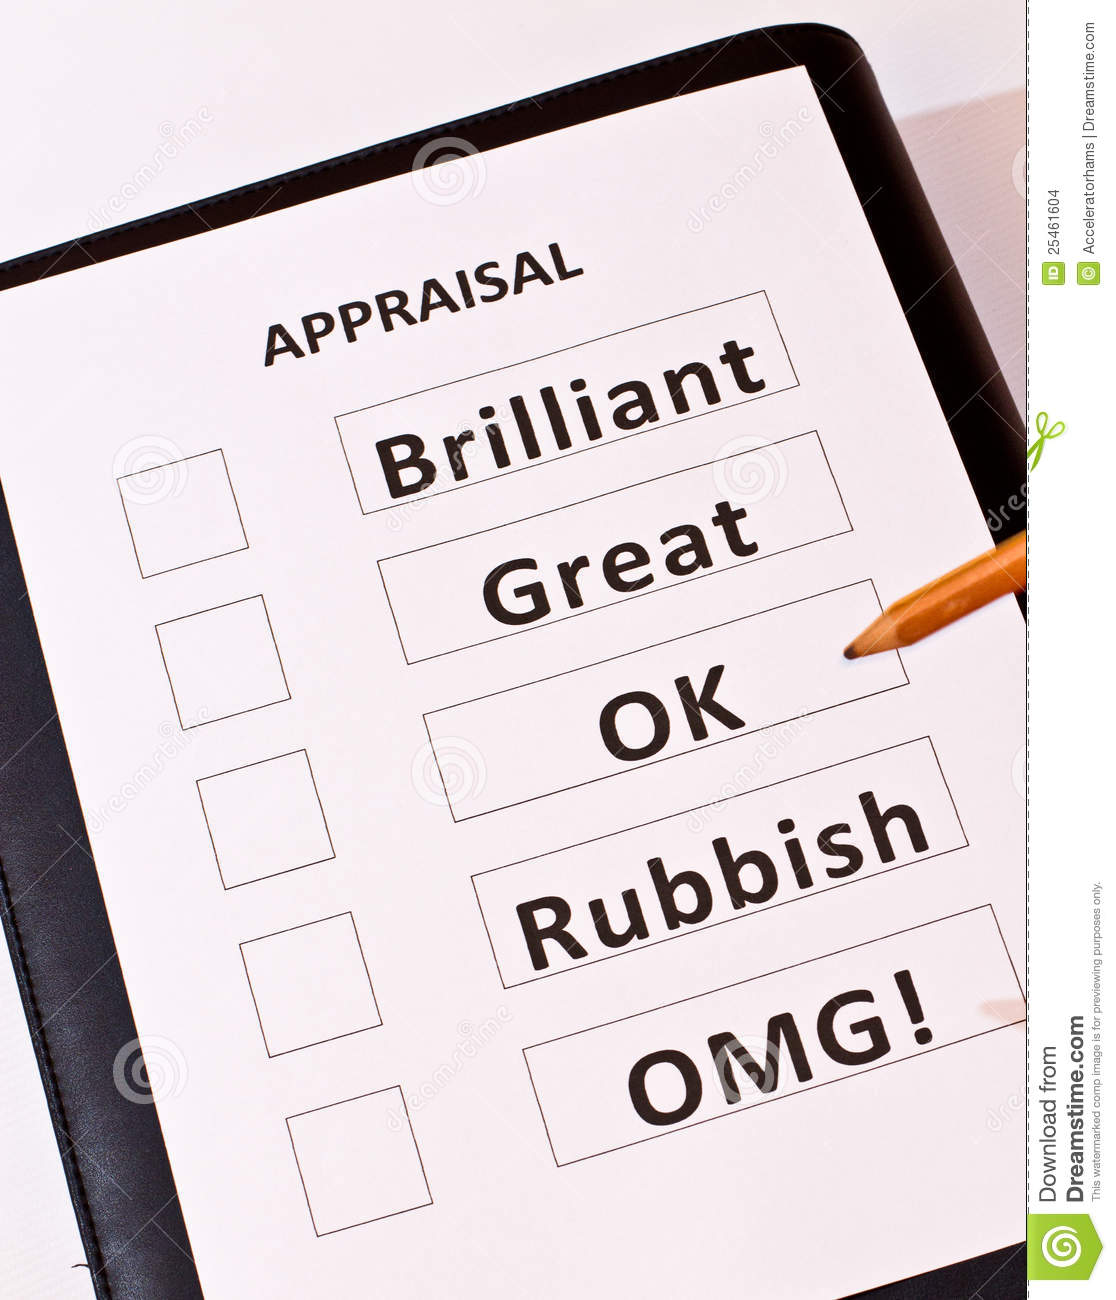 the case of the performance appraisal frank Performance appraisal (or performance many organisations struggle to measure how employees contribute to the organisational performance where this is the case.